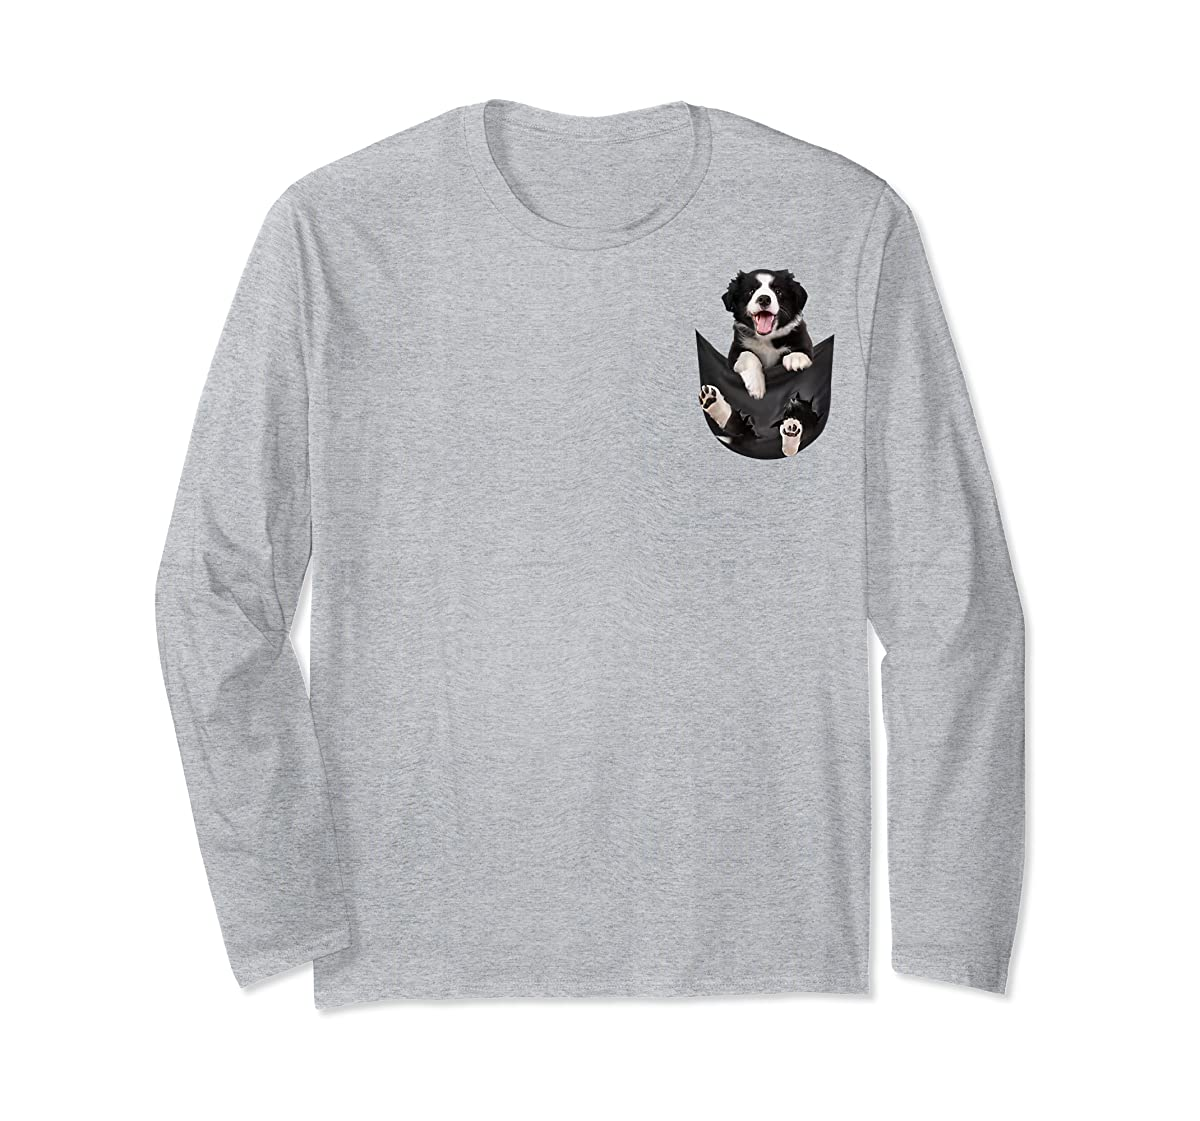 Gift dog funny cute shirt - Border Collie in pocket shirt T-Shirt-Long Sleeve-Sport Grey